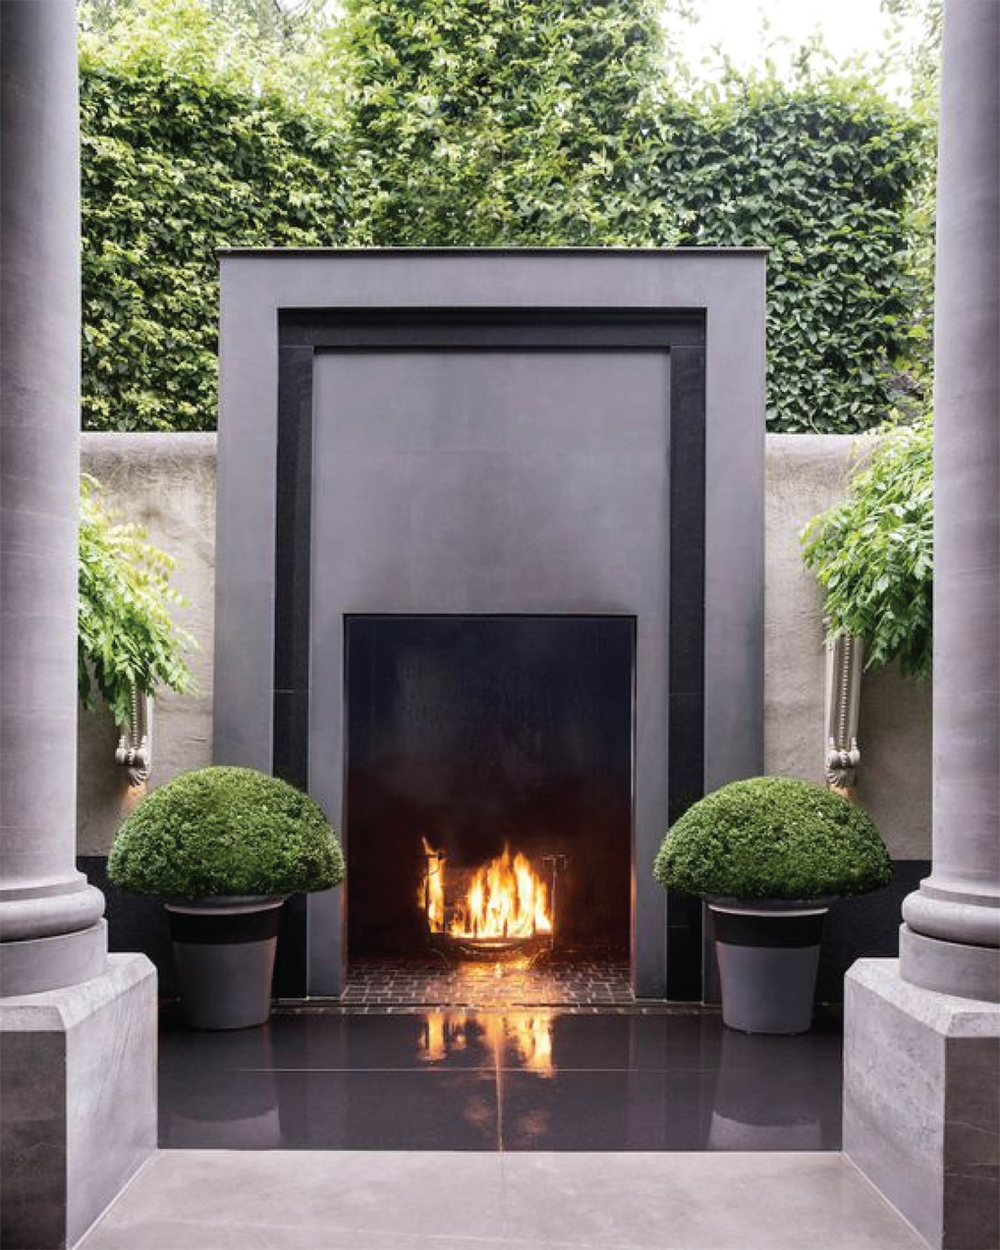 On trend outdoor fireplaces akin design studio for Outdoor fireplace designs plans